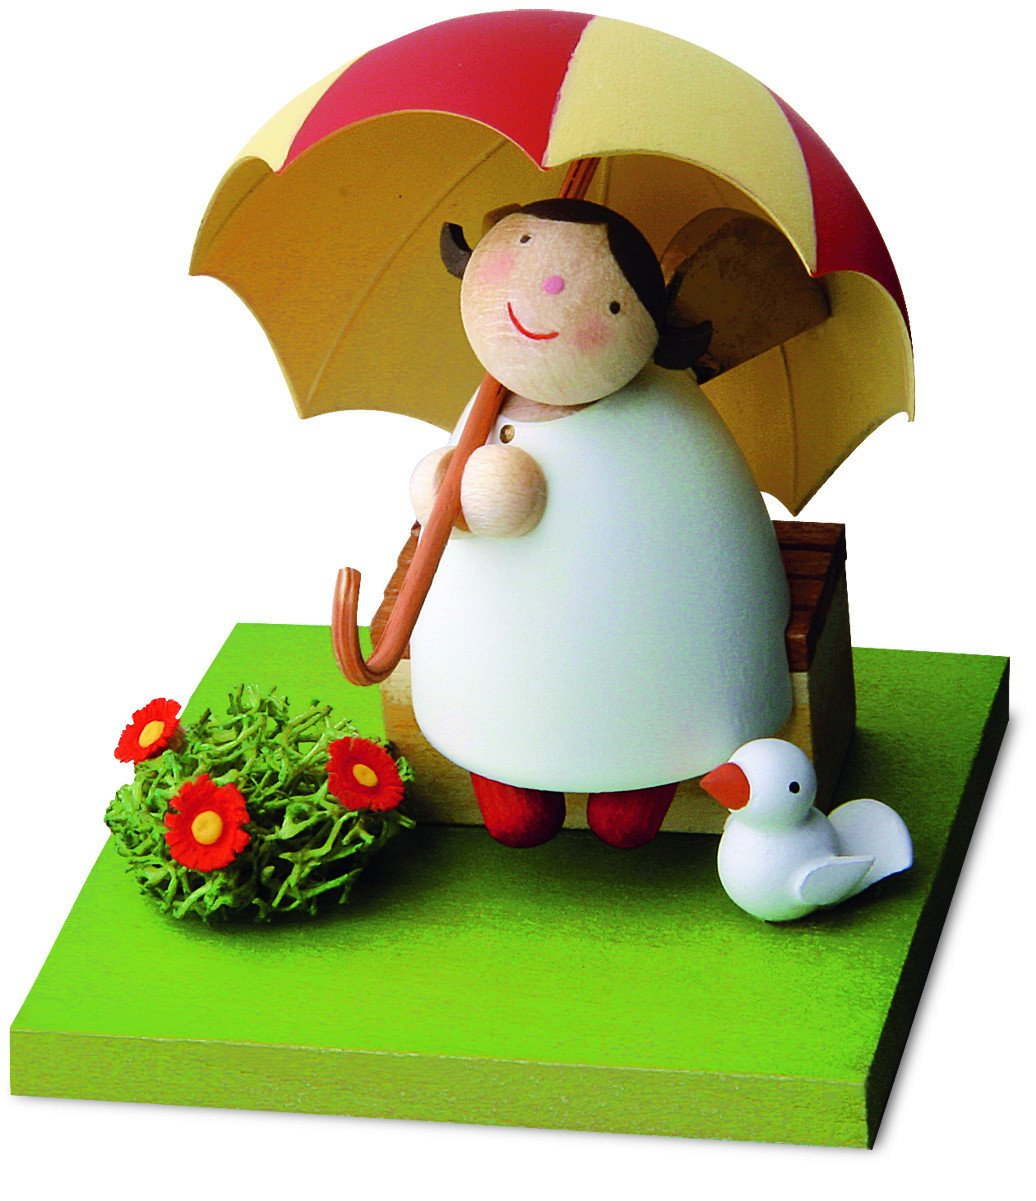 Little Angel Figurine - Under an umbrella